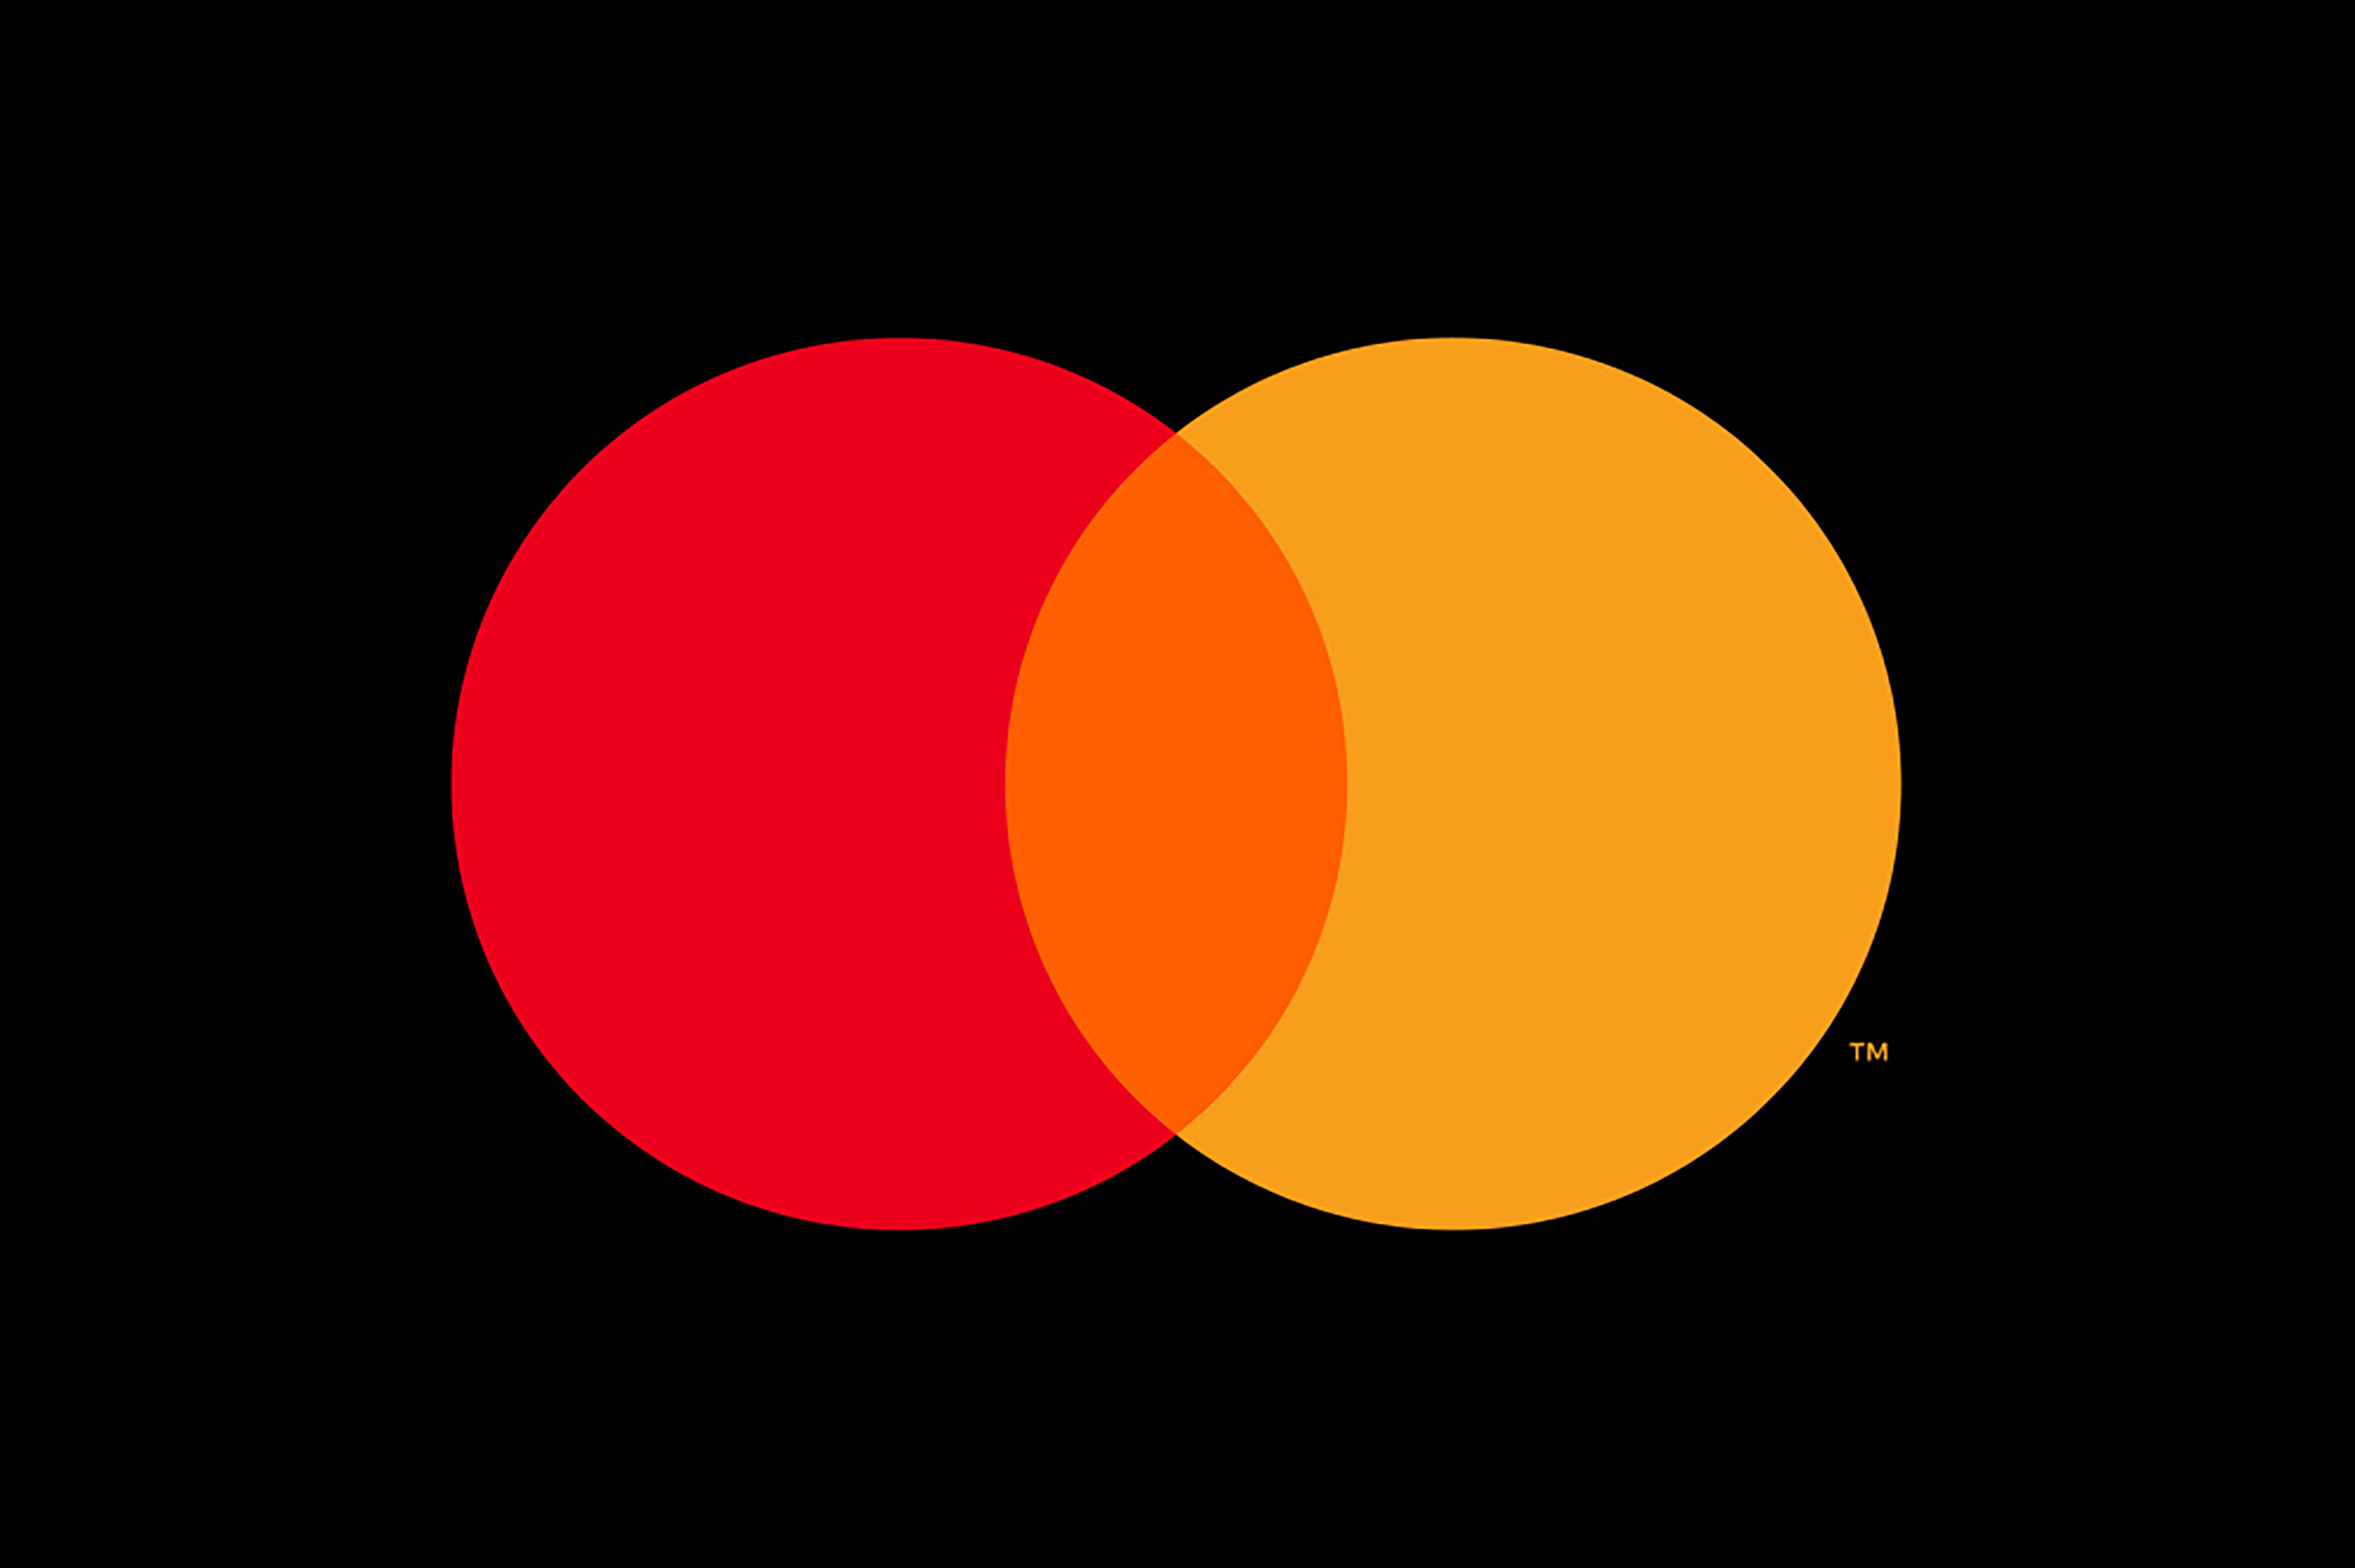 Mastercard Drops Name From New Logo, In Style Of Apple, Nike, and